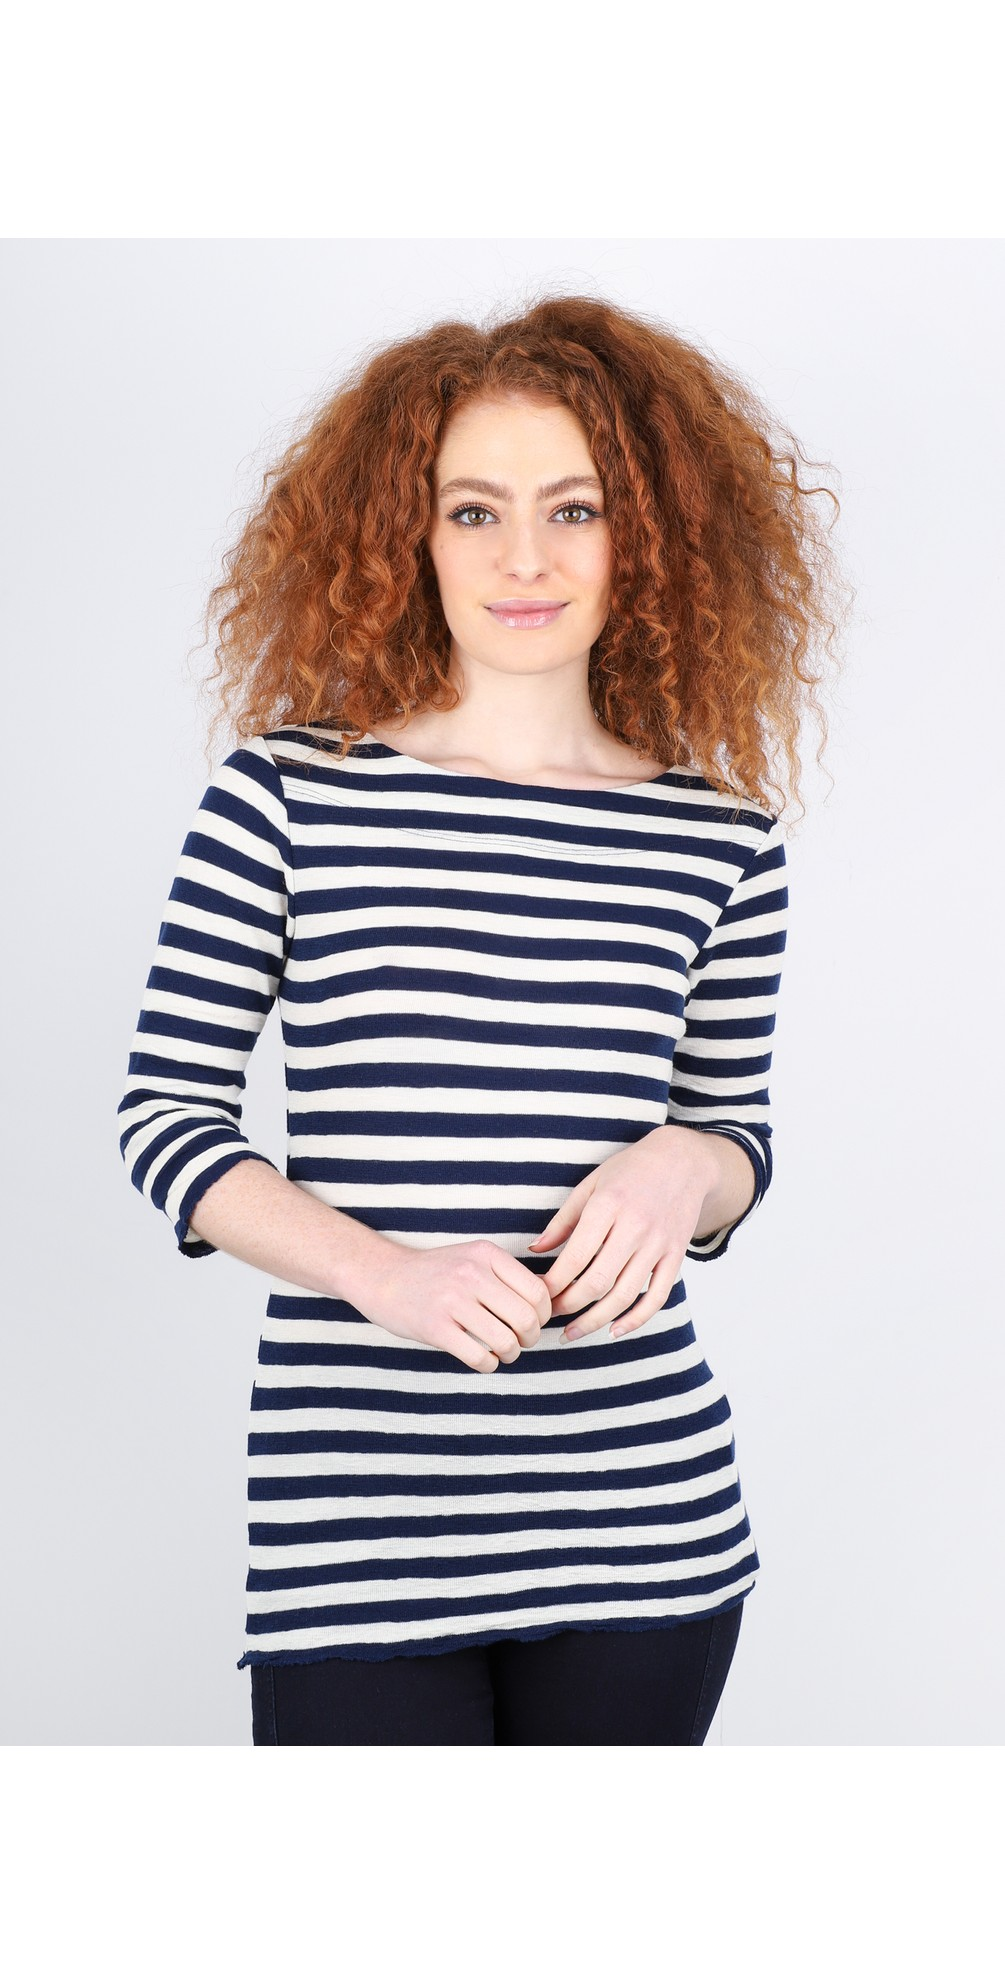 Mette Three Quarter Sleeve Blusbar Merino Top main image